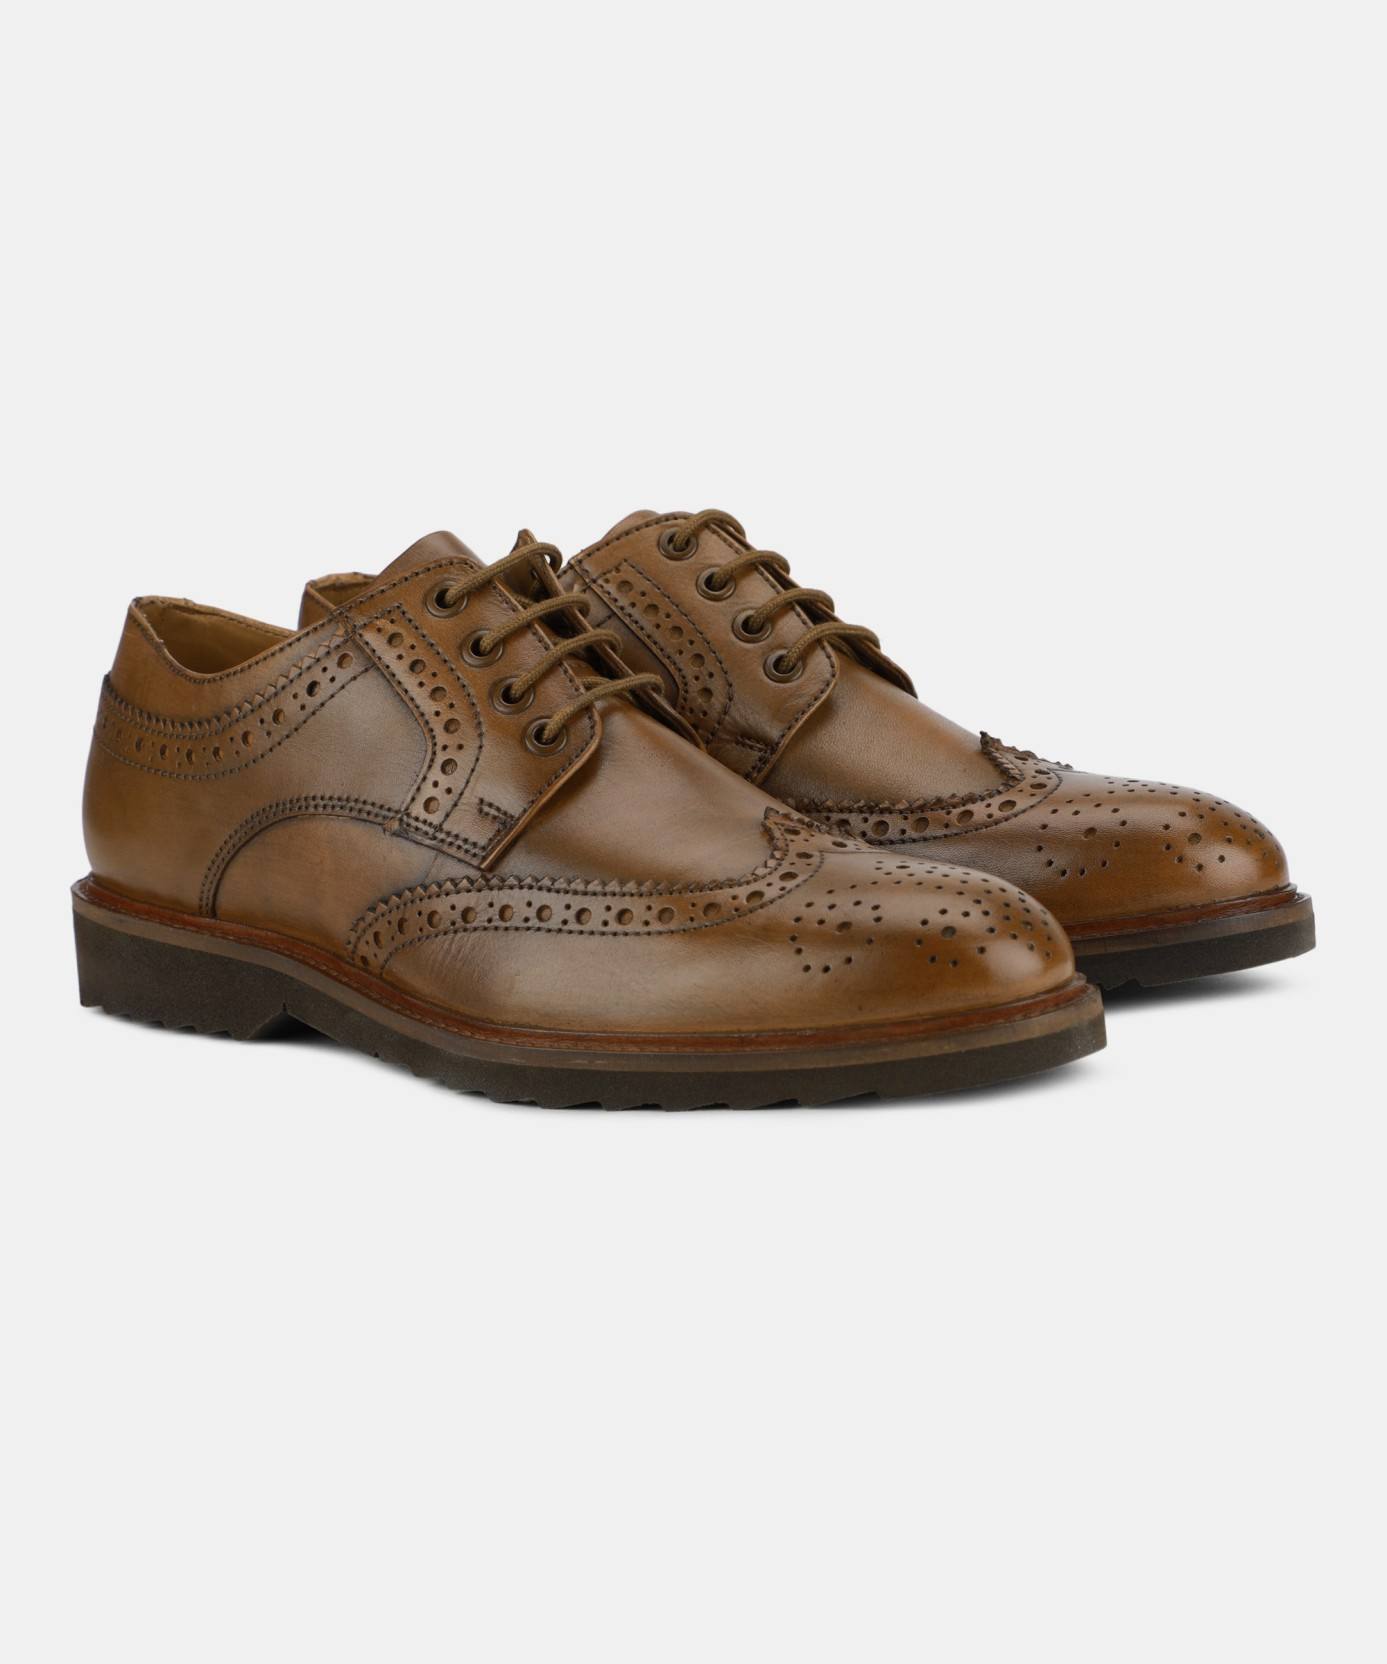 Van Heusen Brogues For Men - Buy Tan Color Van Heusen Brogues For ... 16b3fc472